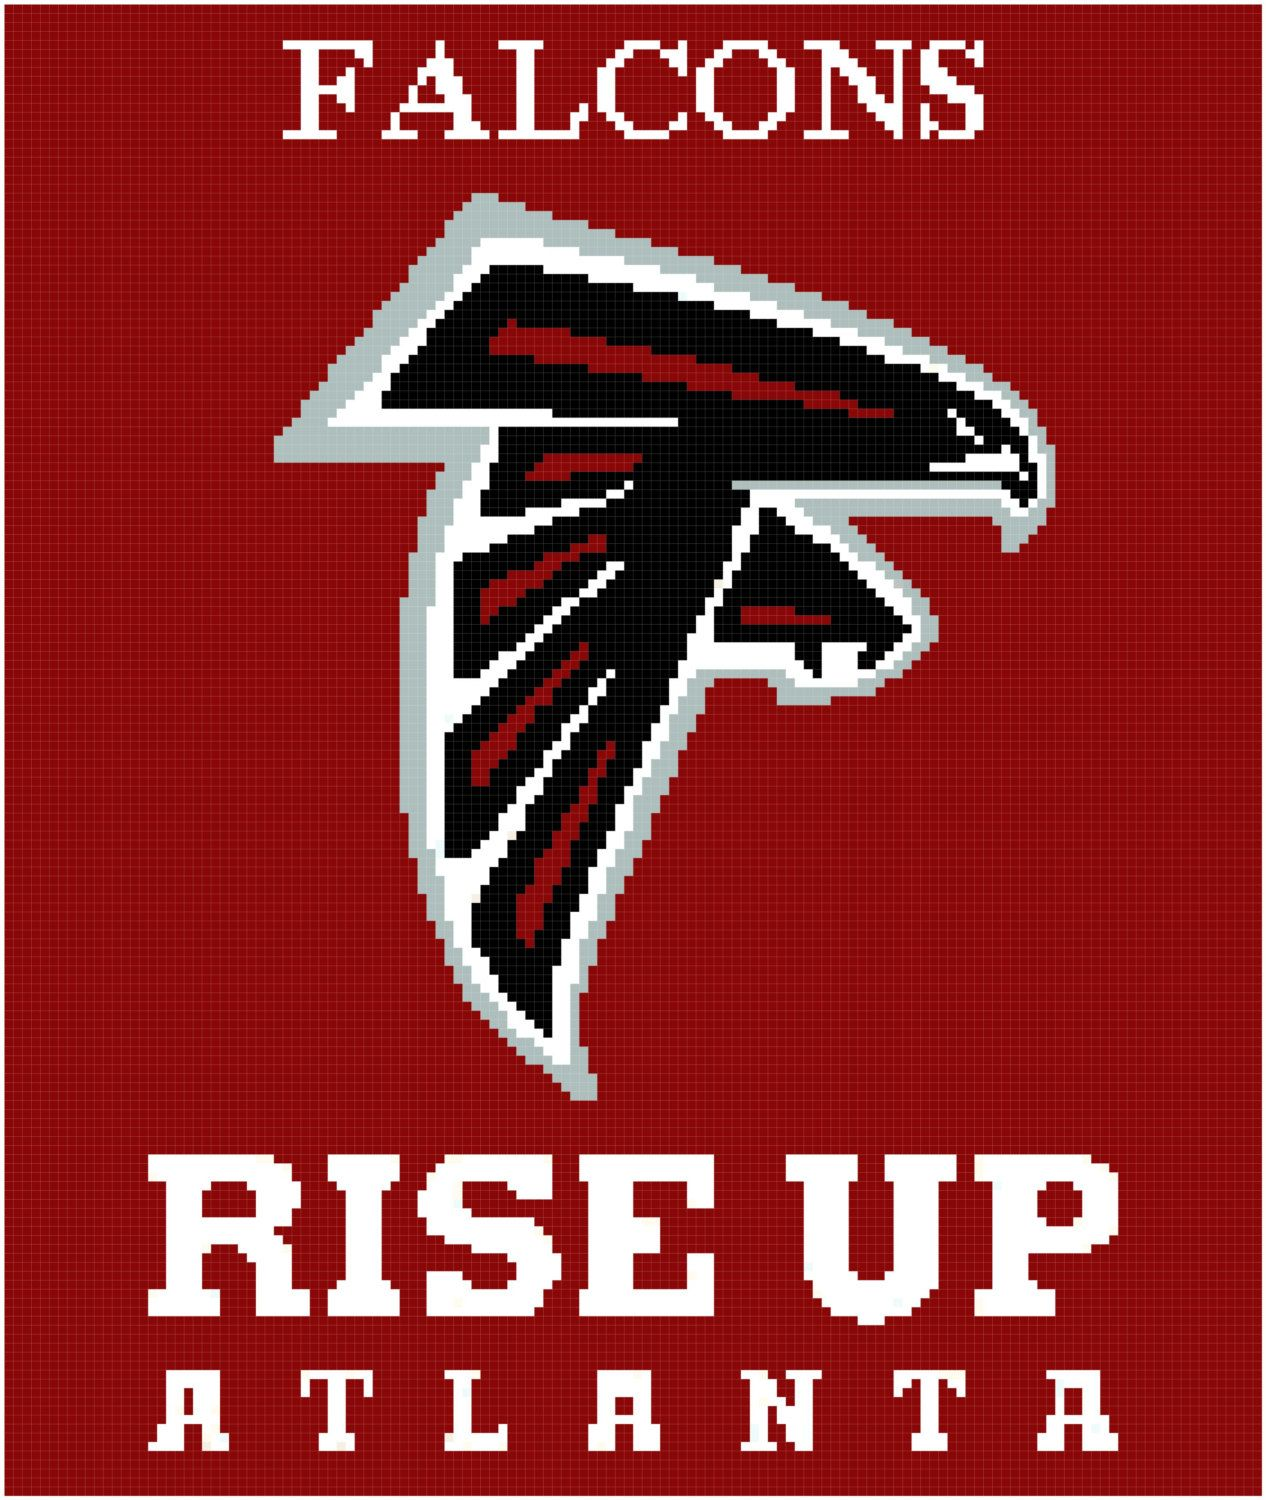 Atlanta Falcons Football Crochet Afghan Graph Pattern C2c Crochet Pattern Free Crochet Patterns Free Blanket Crochet Afghan